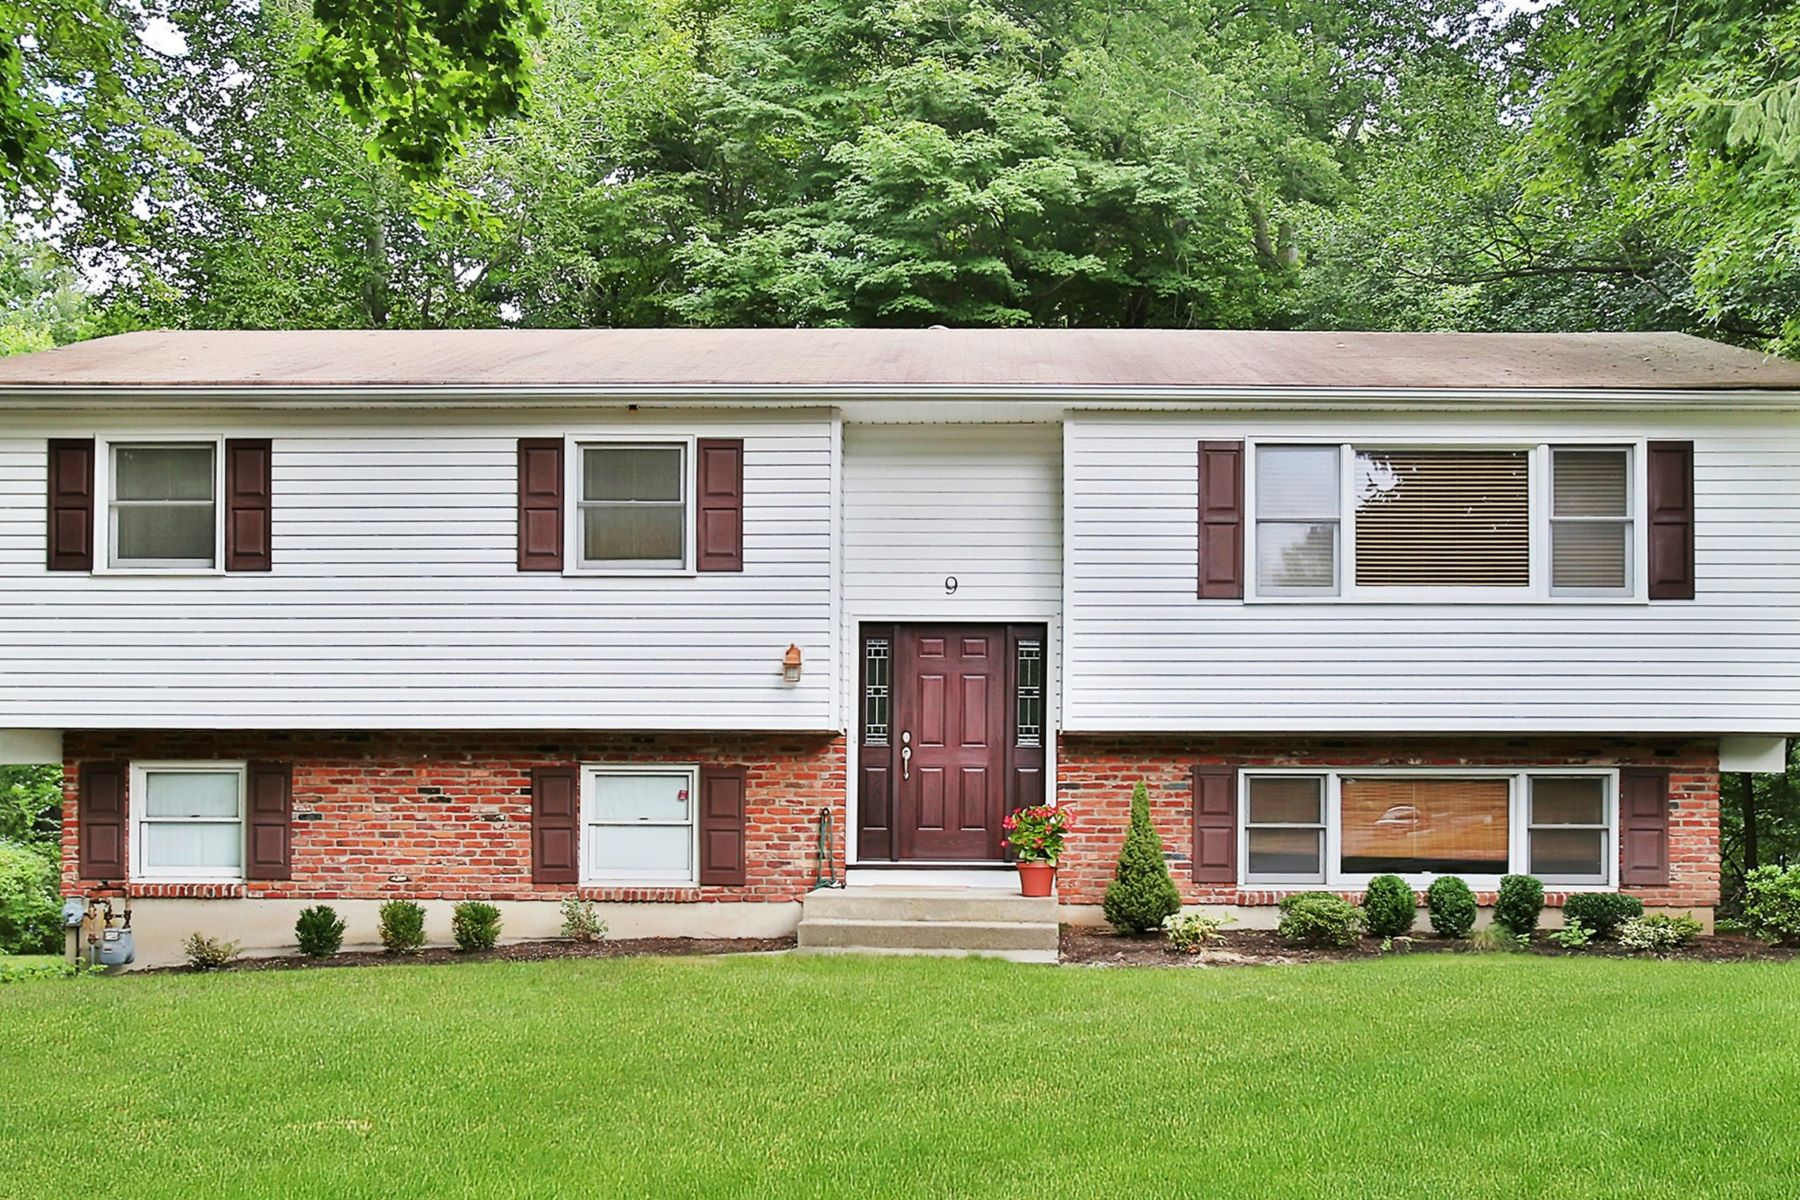 Single Family Home for Sale at Lovely New City Home - Sale Pending 9 Verona Court New City, New York, 10956 United States